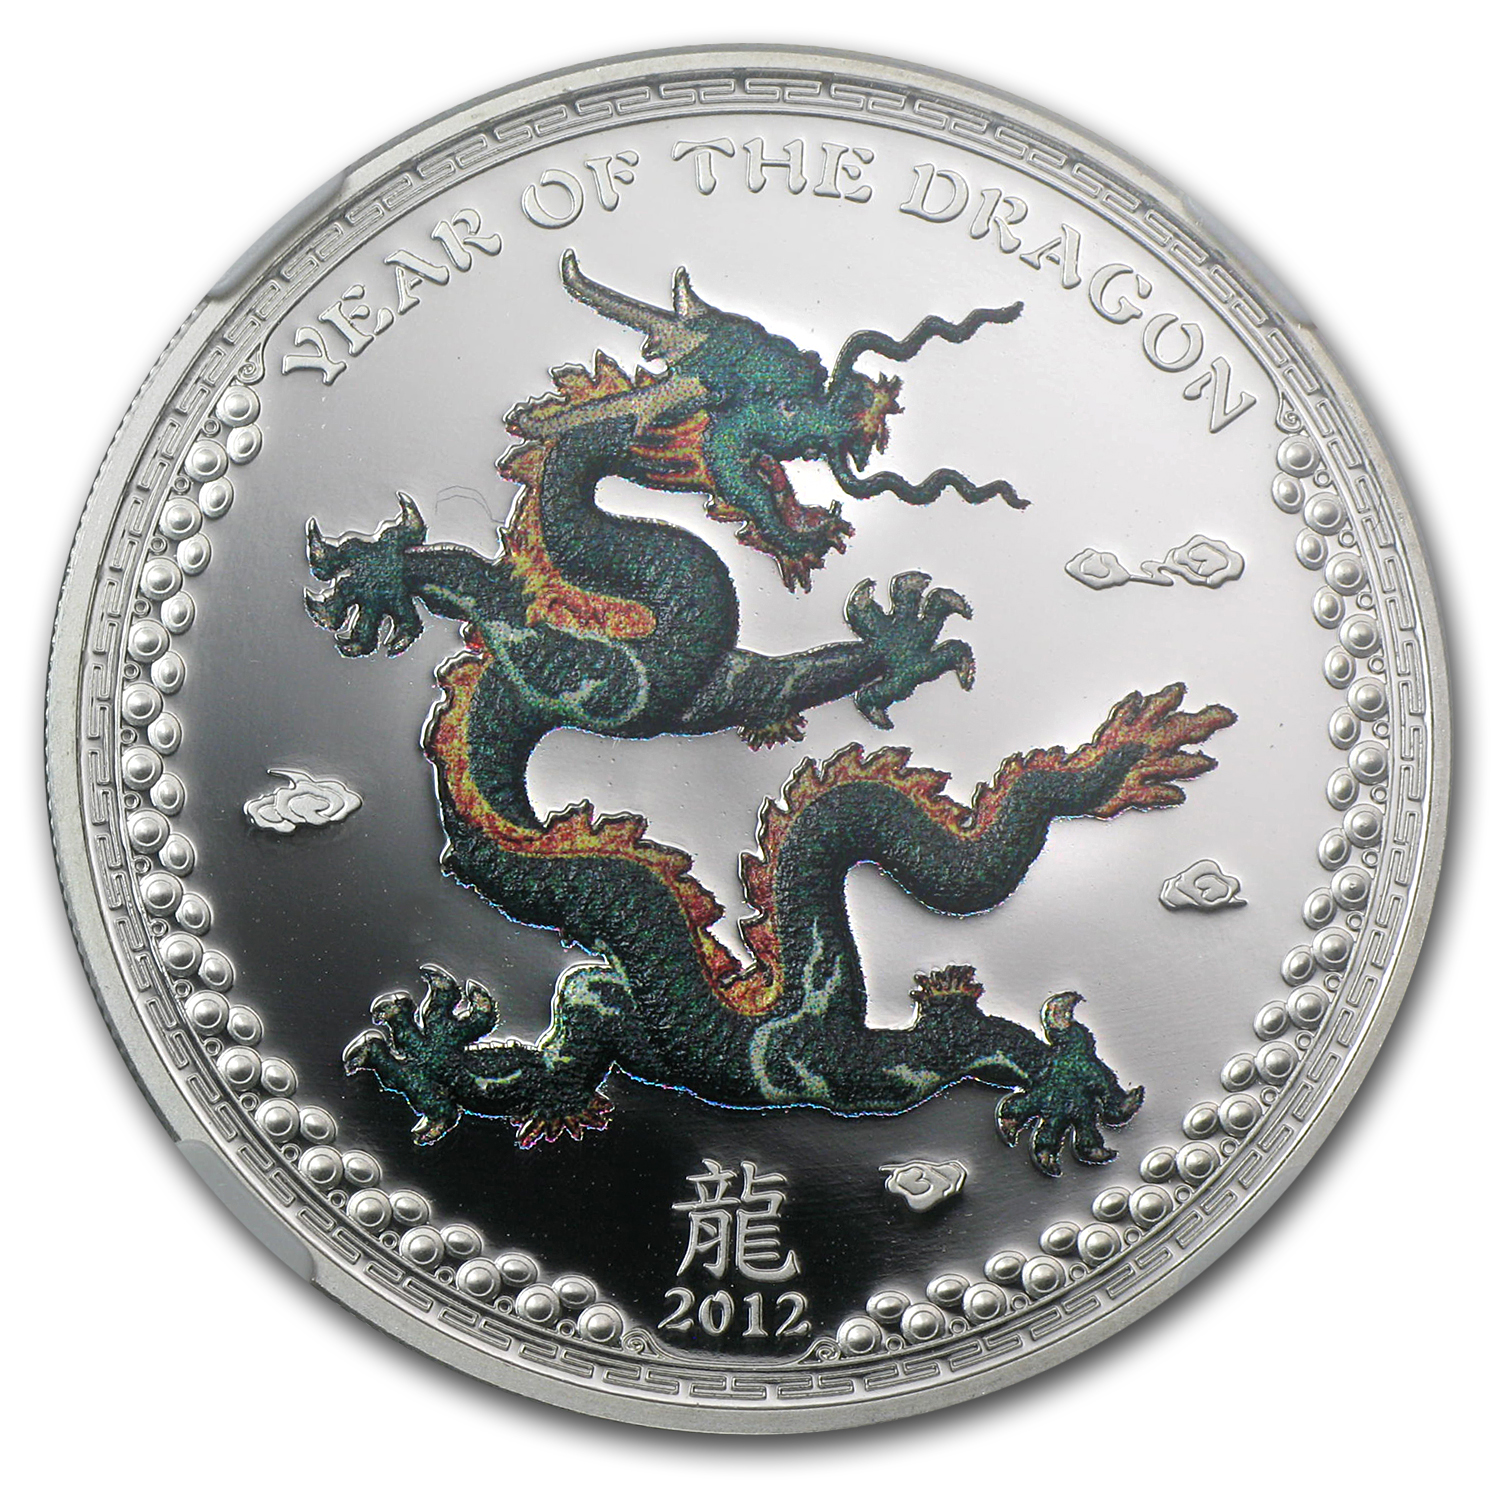 2012 Palau $5 Silver Dragon Green Colorized (Right) NGC PF-69 UC